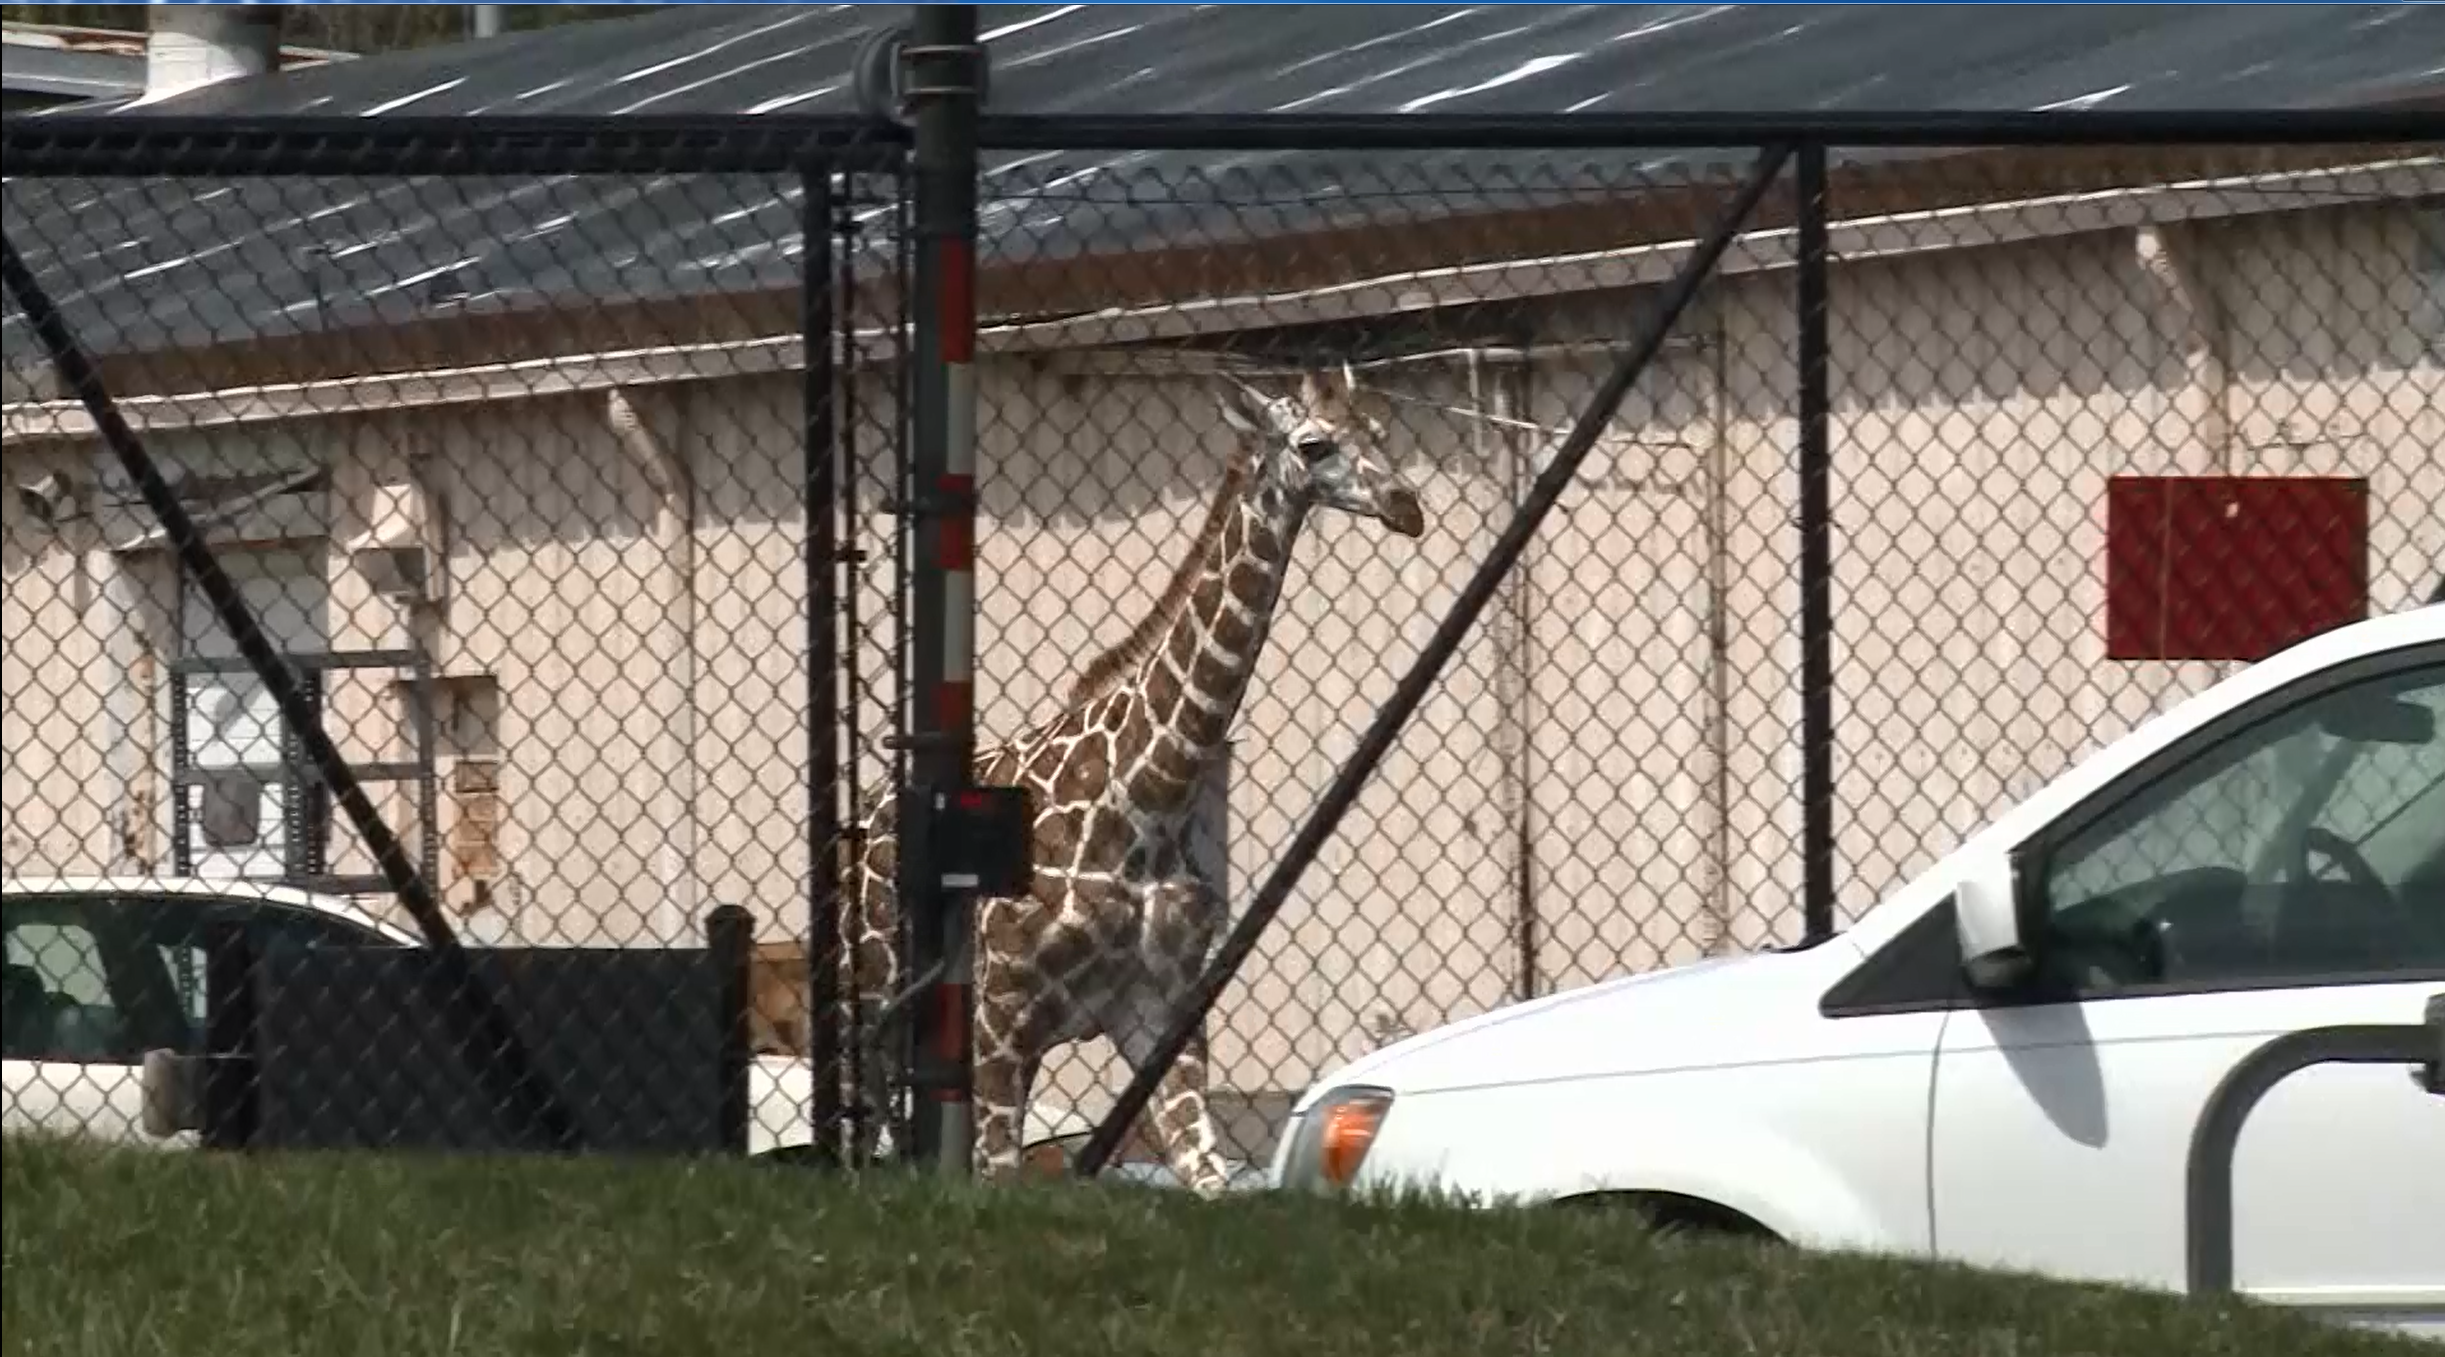 Zookeepers attempt to get 7-month-old giraffe Thabisa back in her cage after an escape at the Fort Wayne Children's Zoo. (CNN Newsource)